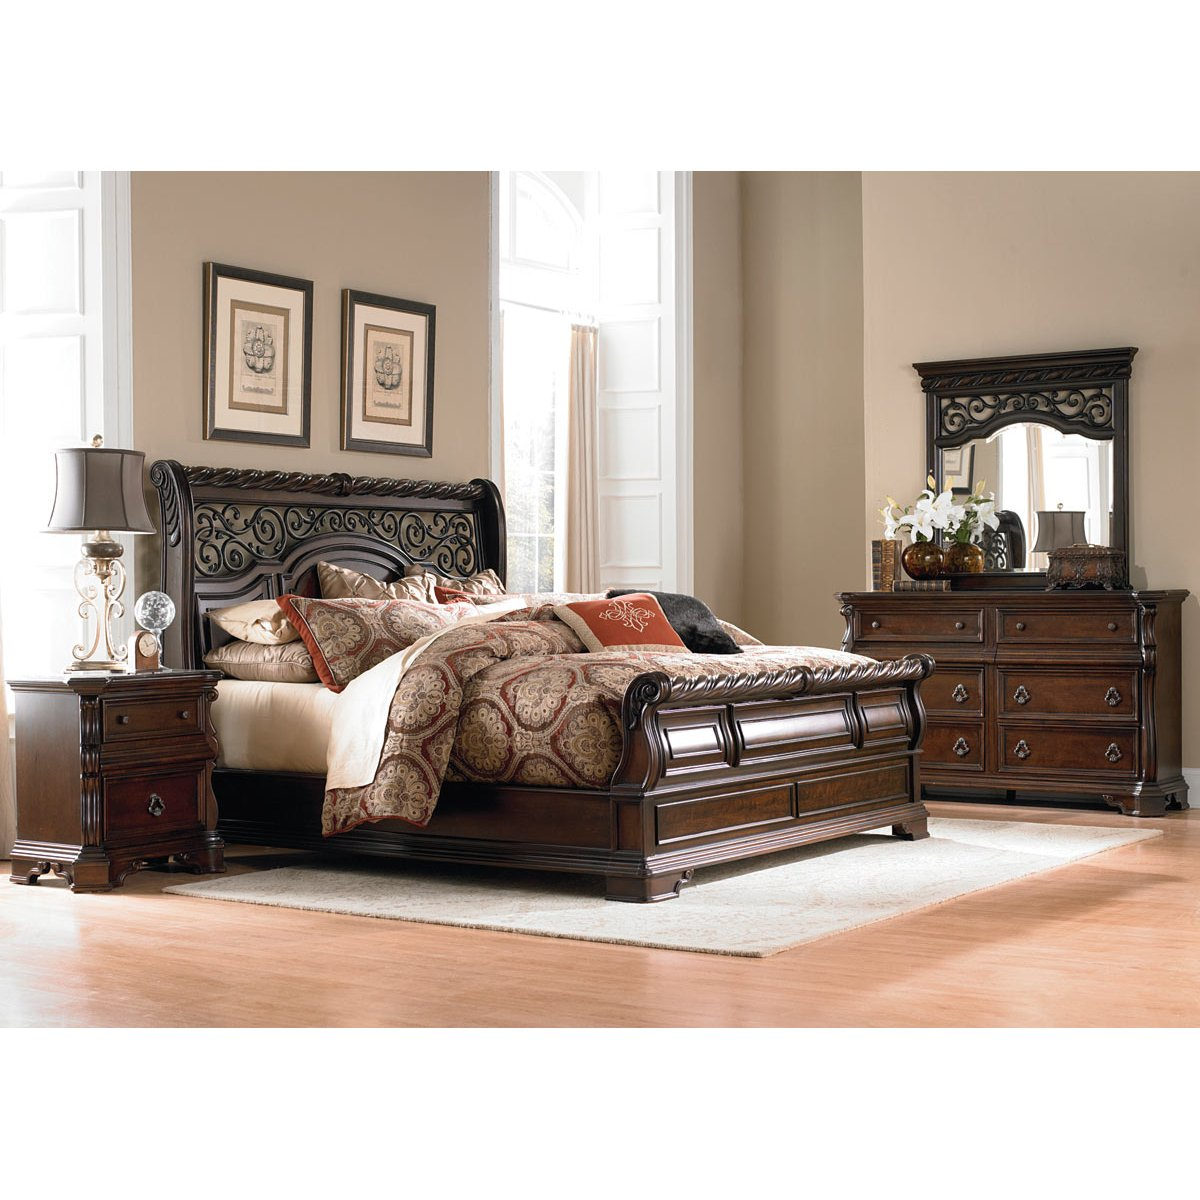 ... Brownstone 6 Piece King Bedroom Set   Arbor Place ...